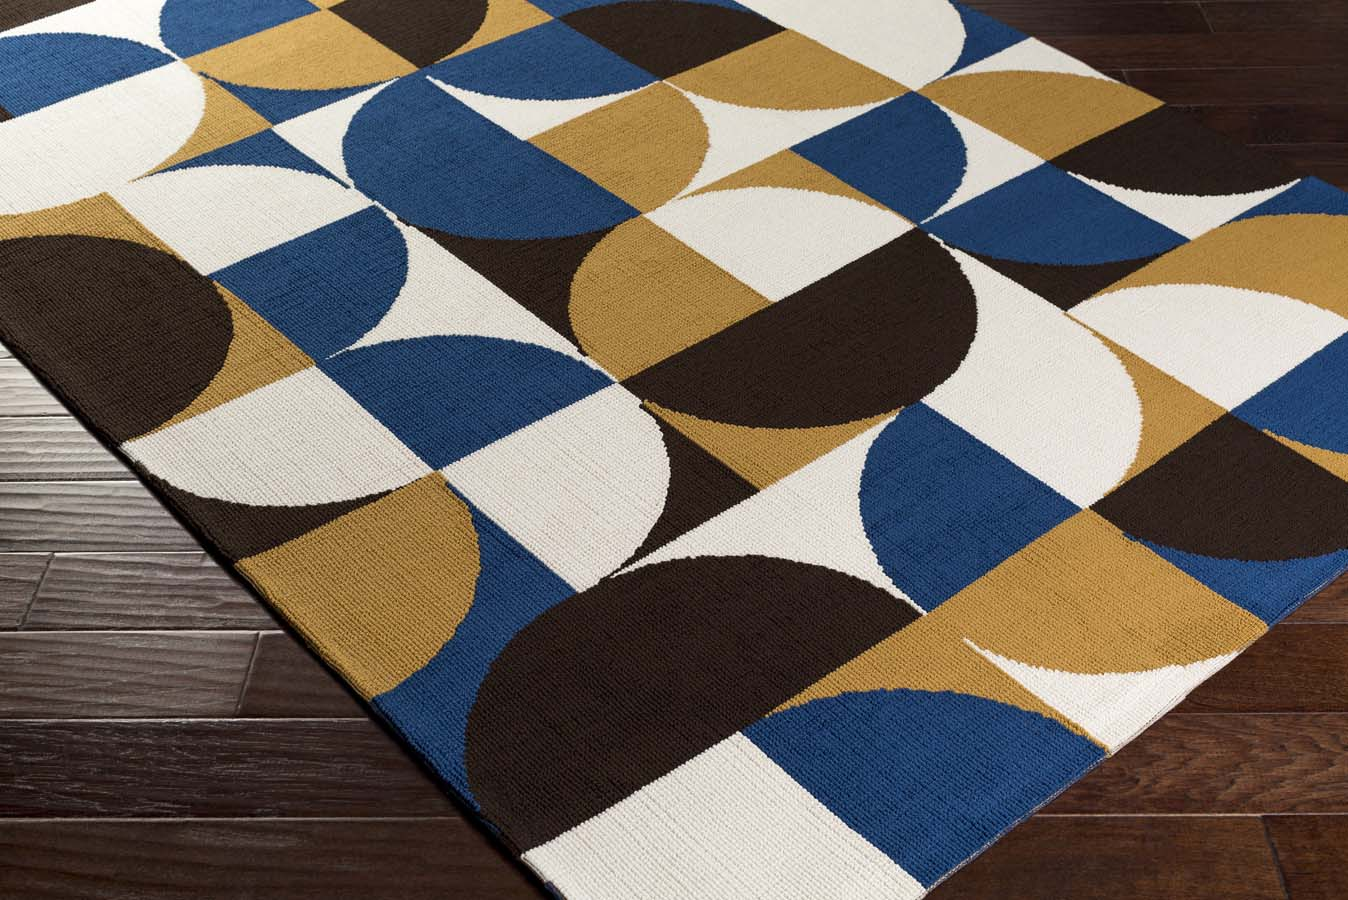 connoisseur rug order navy to blue zoom itc made essence retailer the rugs